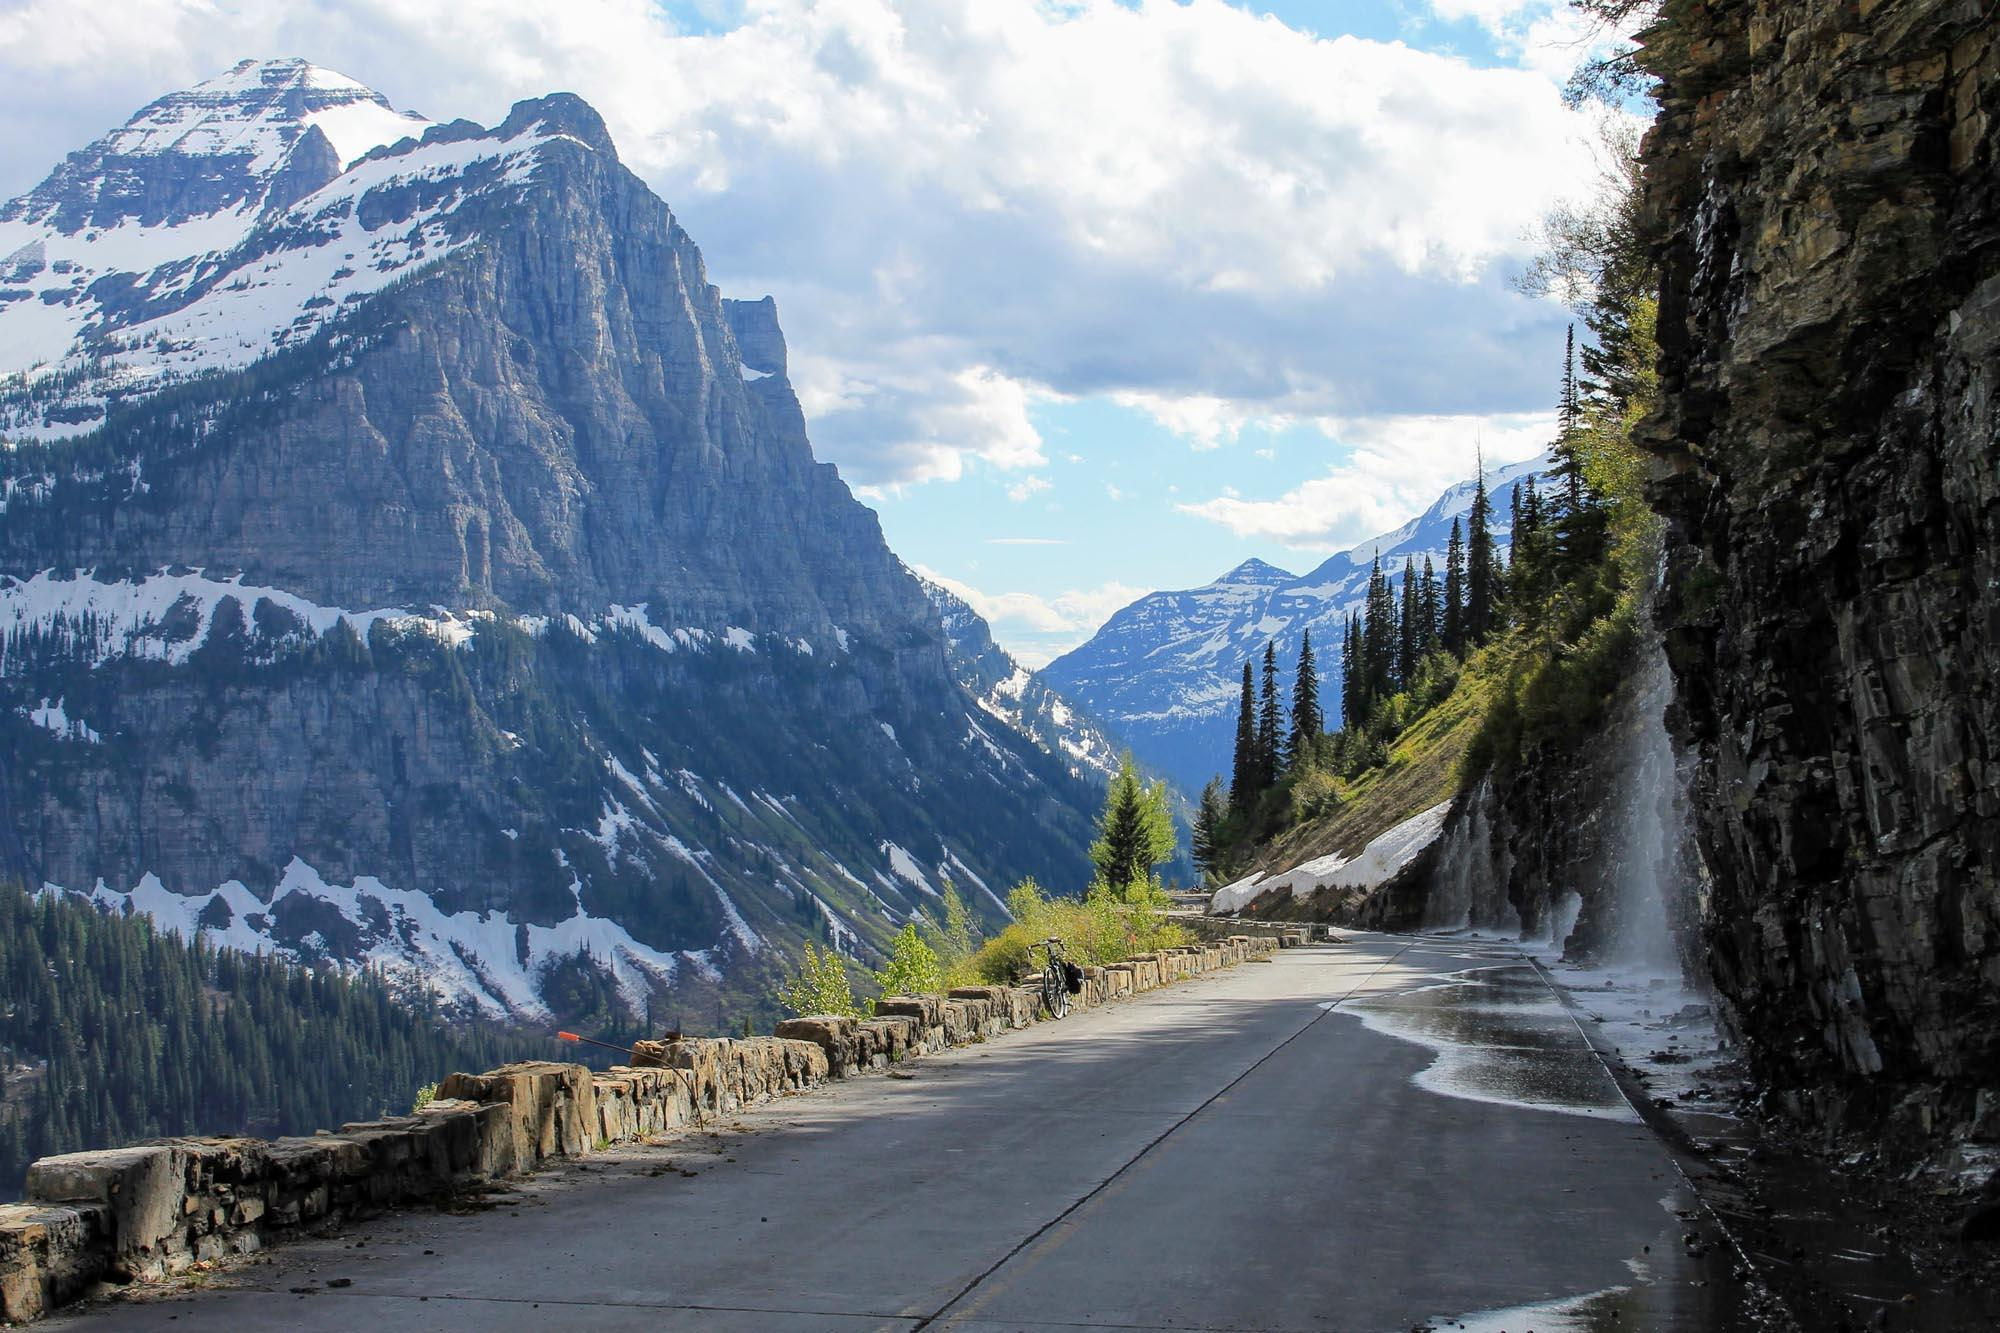 The Weeping Wall is a popular stopping point along Going-to-the-Sun Road